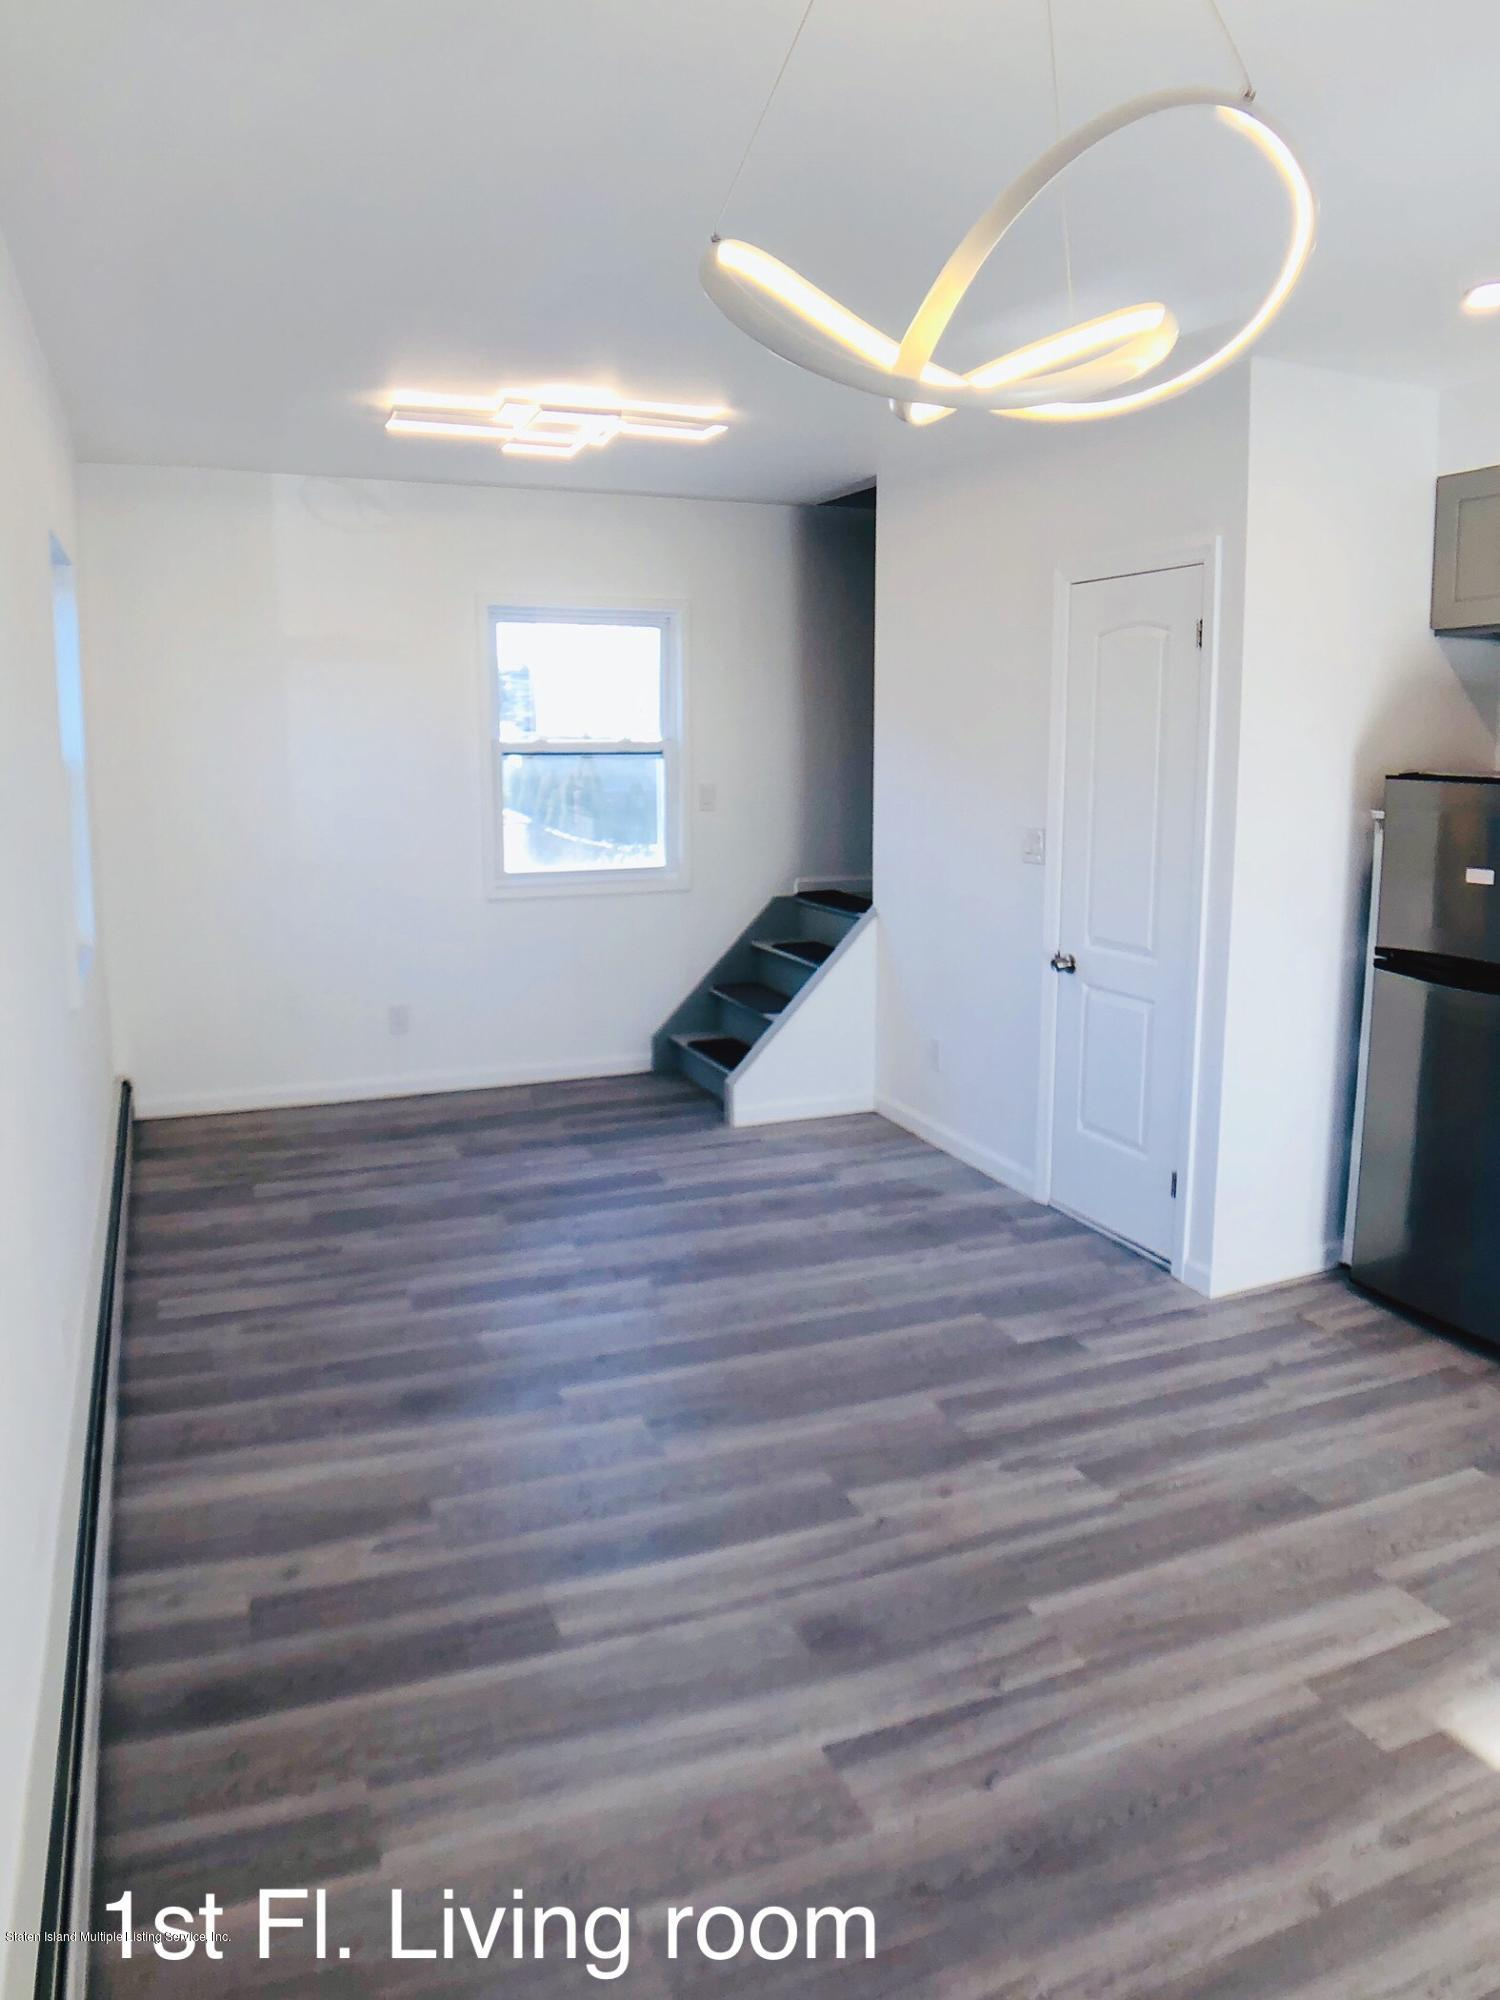 66 Hickory Avenue,Staten Island,New York,10305,United States,2 Bedrooms Bedrooms,5 Rooms Rooms,2 BathroomsBathrooms,Res-Rental,Hickory,1129644